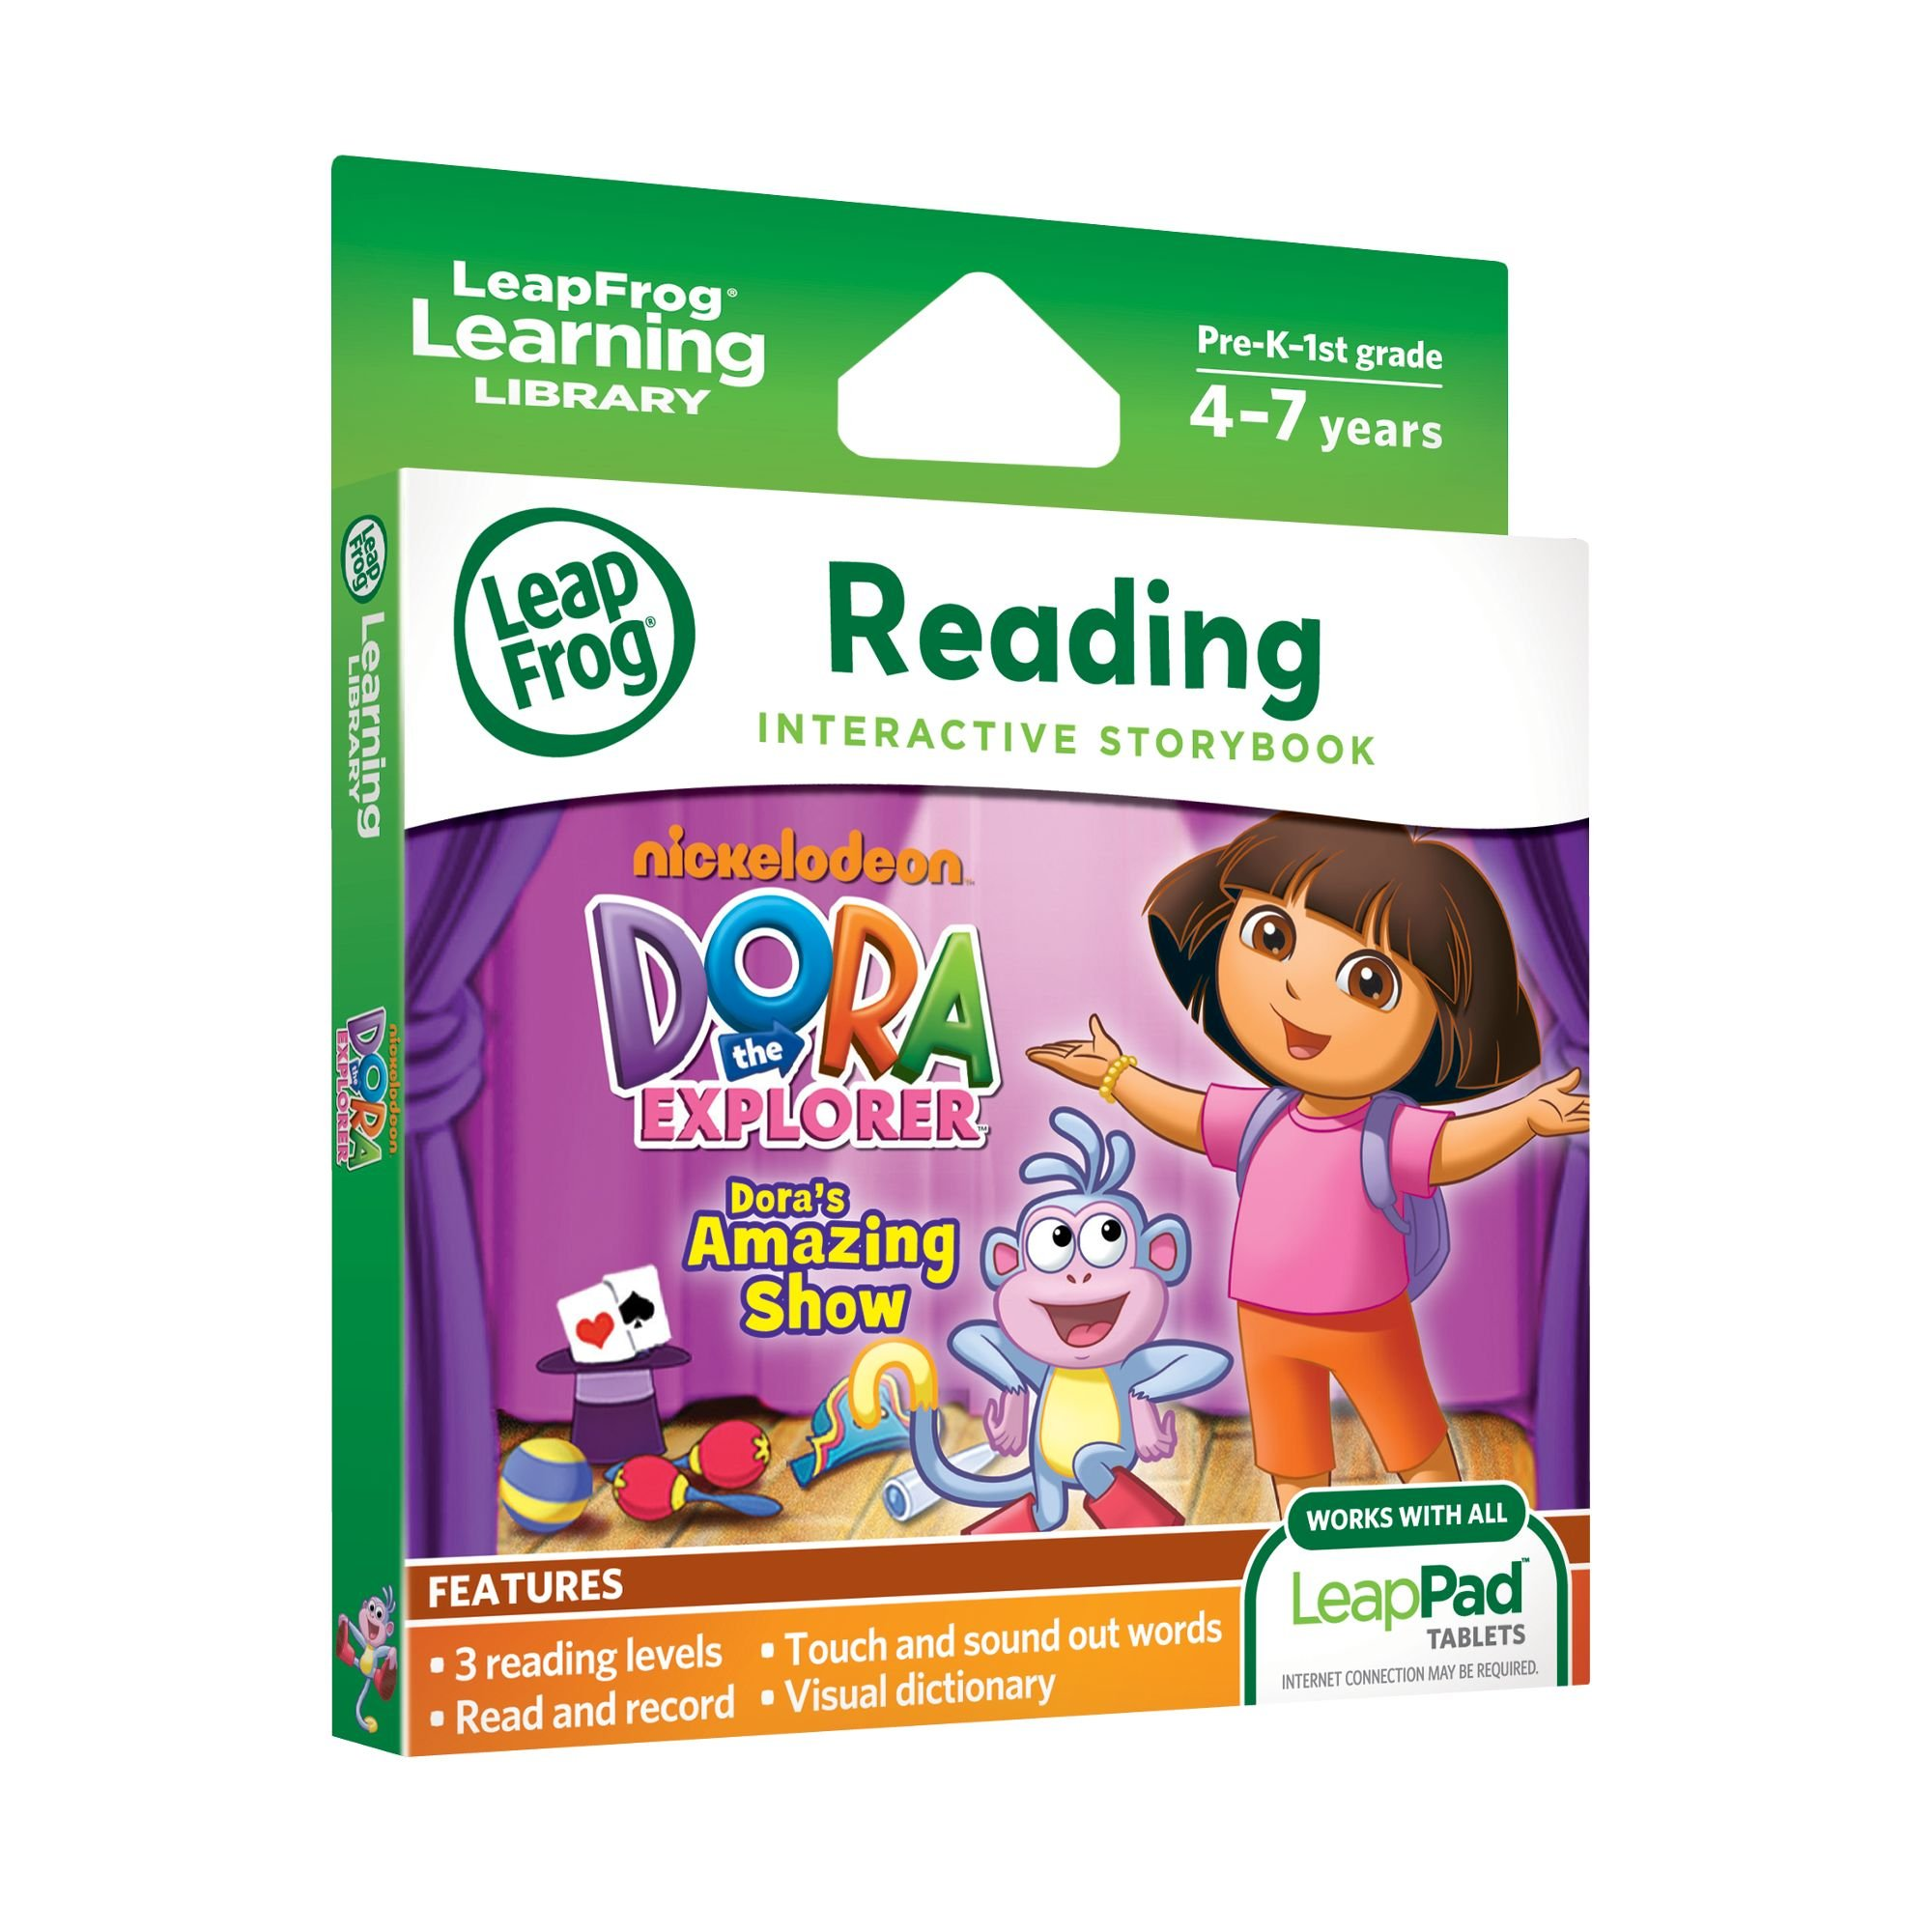 LeapFrog LeapPad Dora's Amazing Show Ultra eBook (works with all LeapPad tablets) by LeapFrog (Image #2)